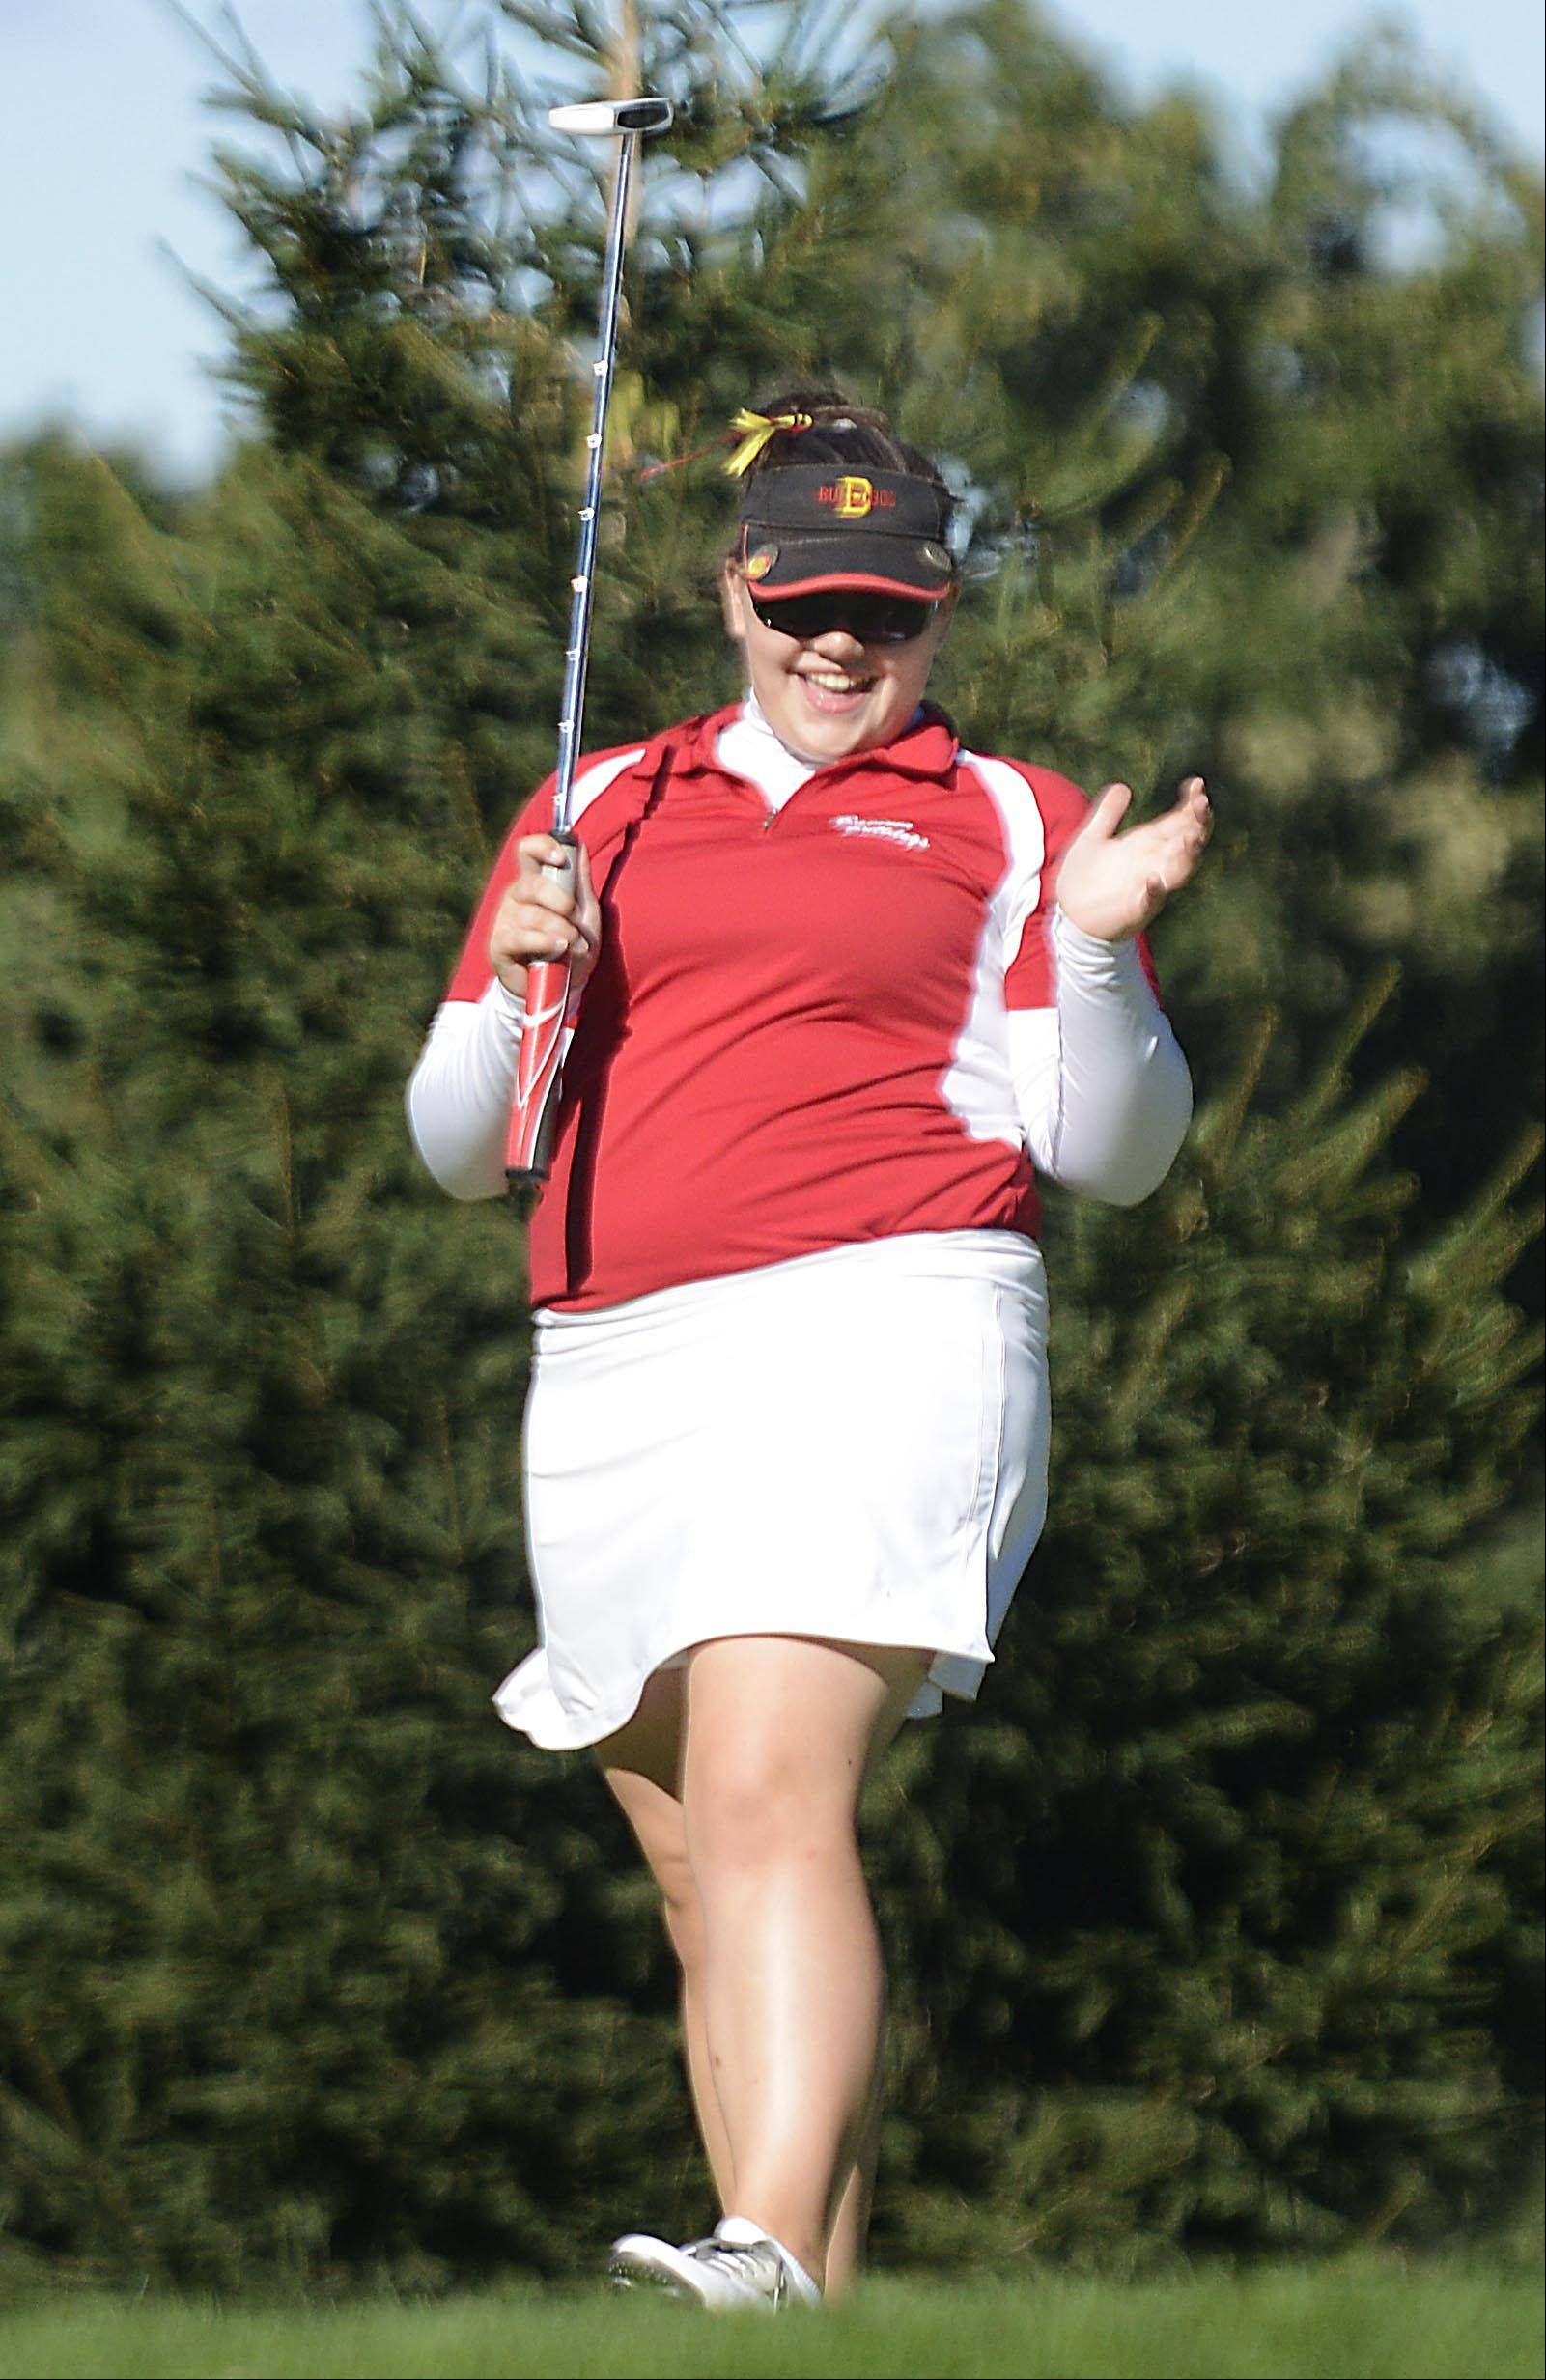 Becca Hasemann of Batavia reacts to her putt on No. 9 Monday at the Elgin Country Club girls golf invitational.